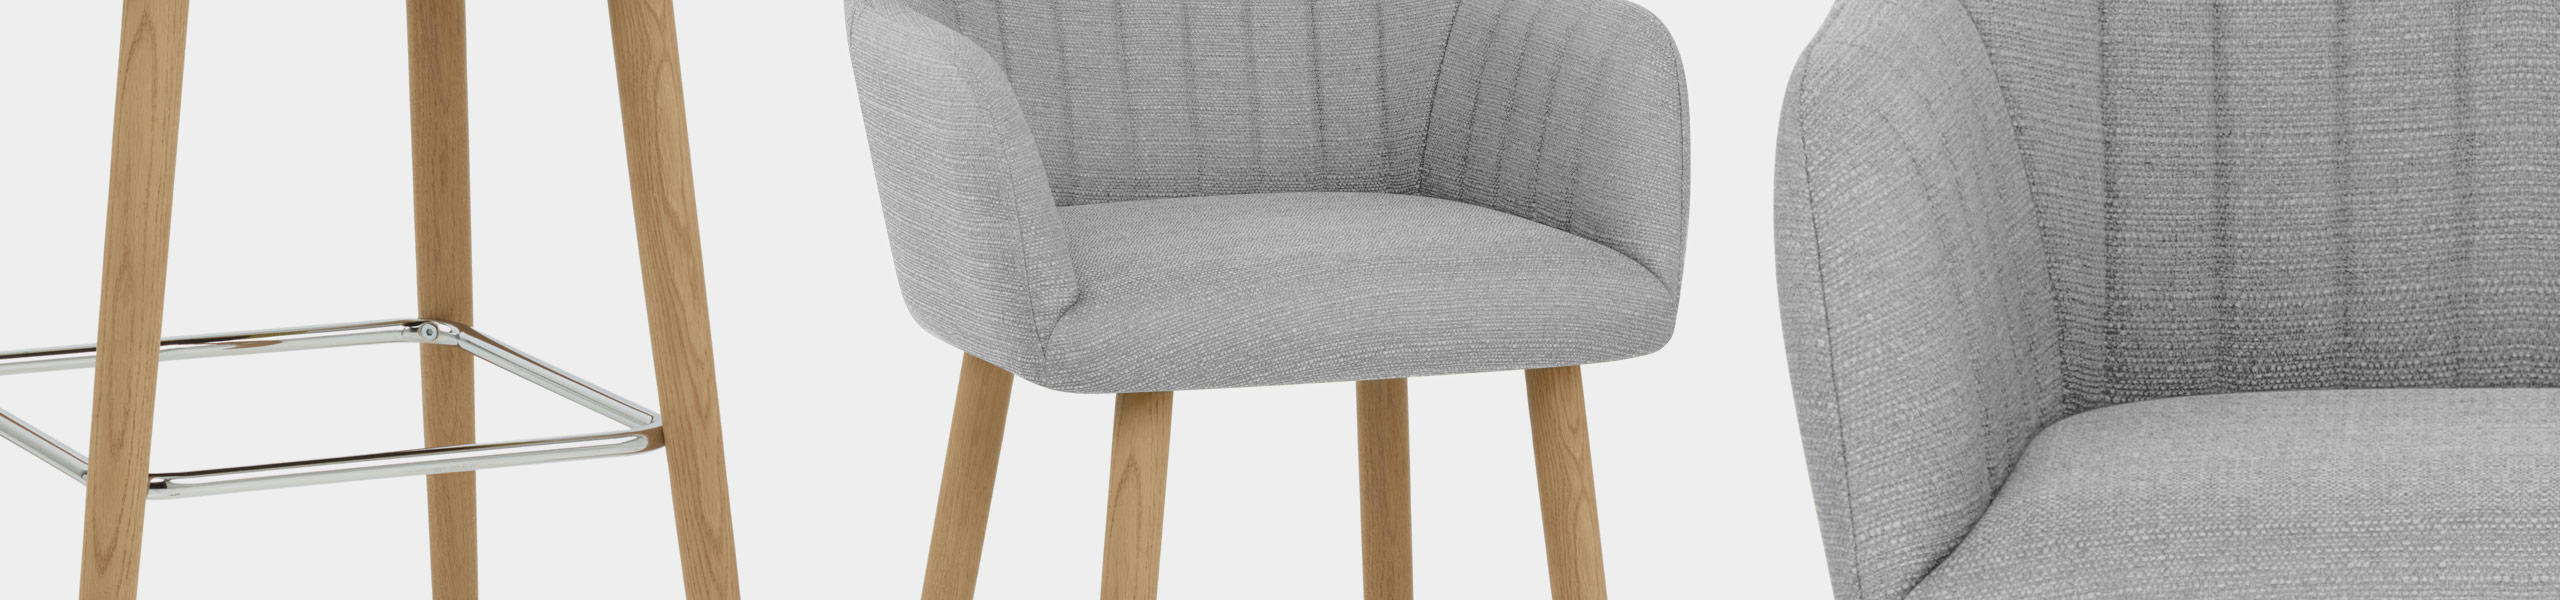 Rio Wooden Stool Grey Fabric Video Banner